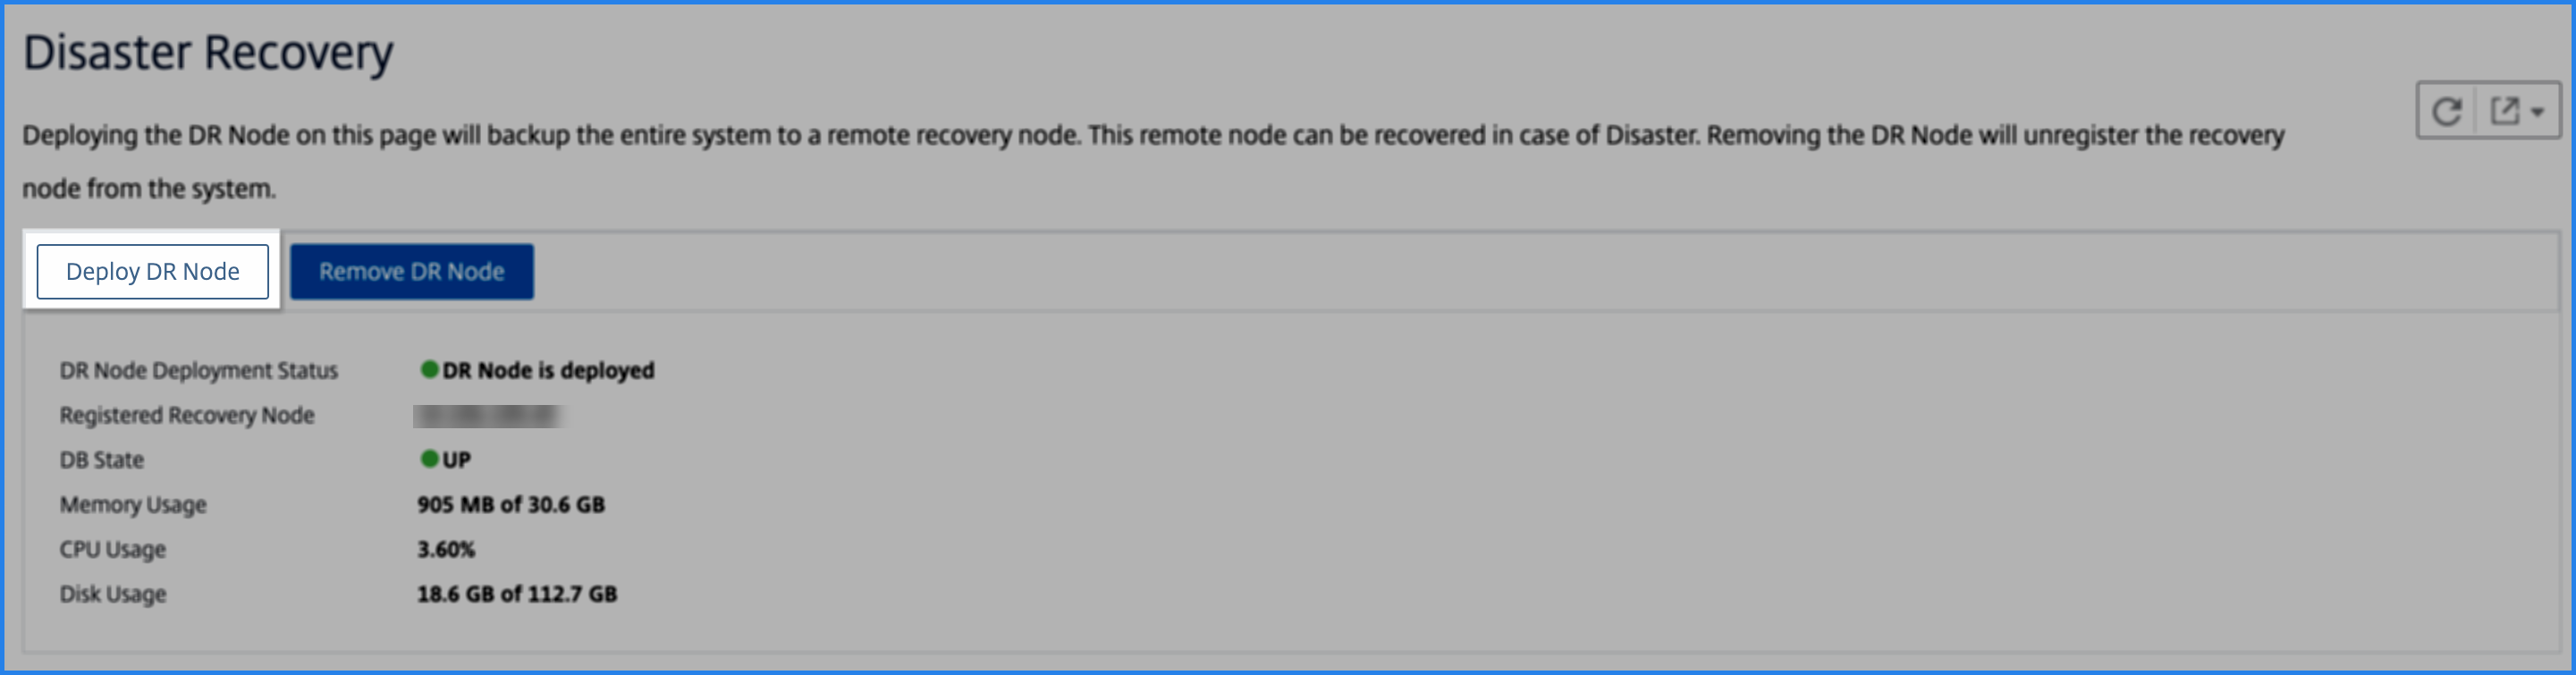 Deploy DR node in the Citrix ADM GUI